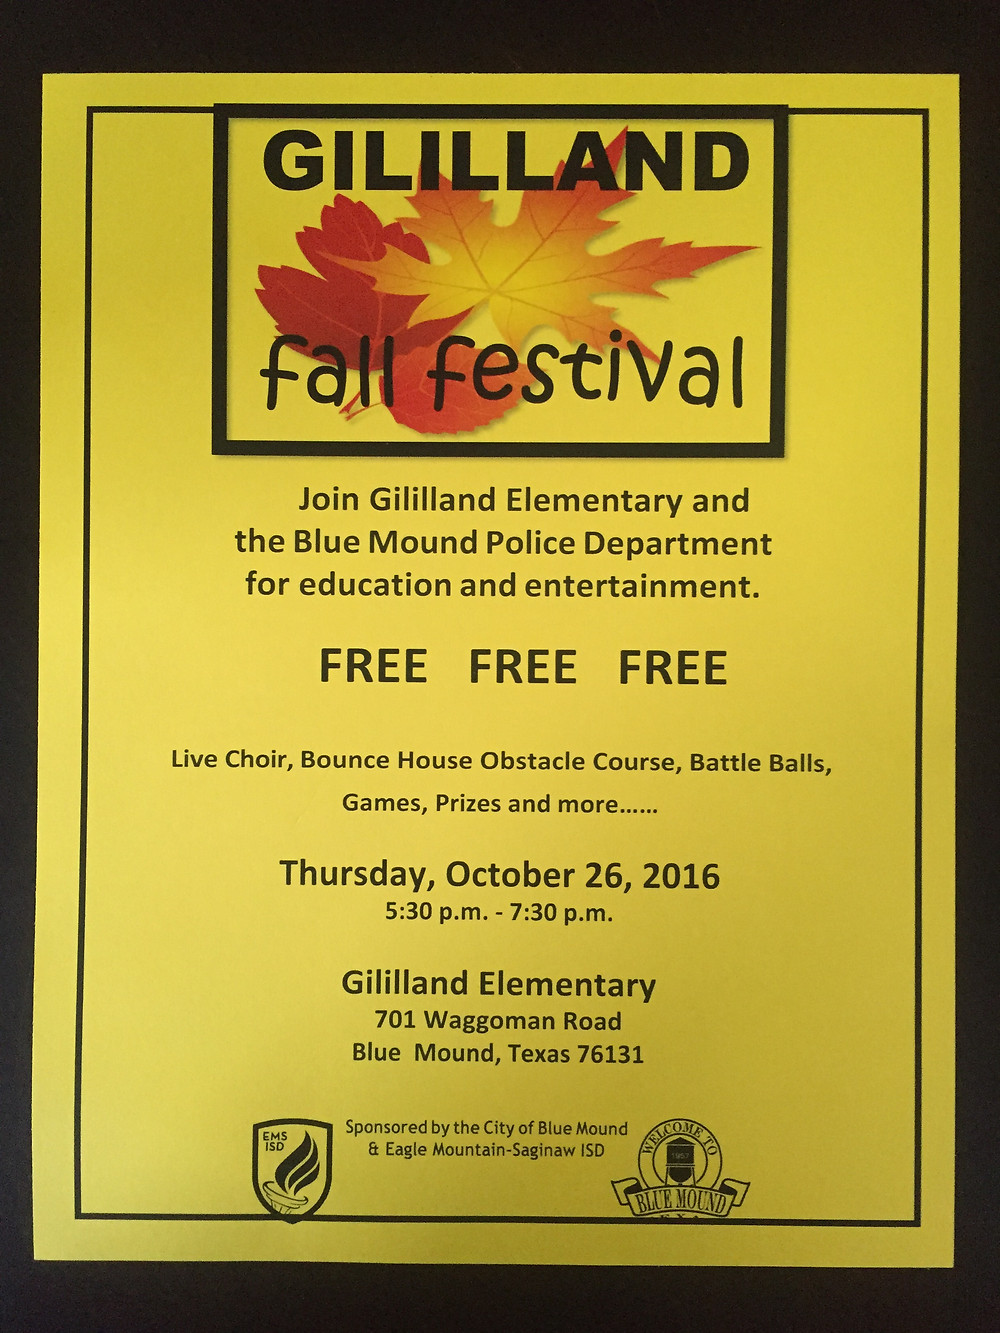 Join us at Gililland Elementary for our fall festival on October 26th @ 5:30PM!